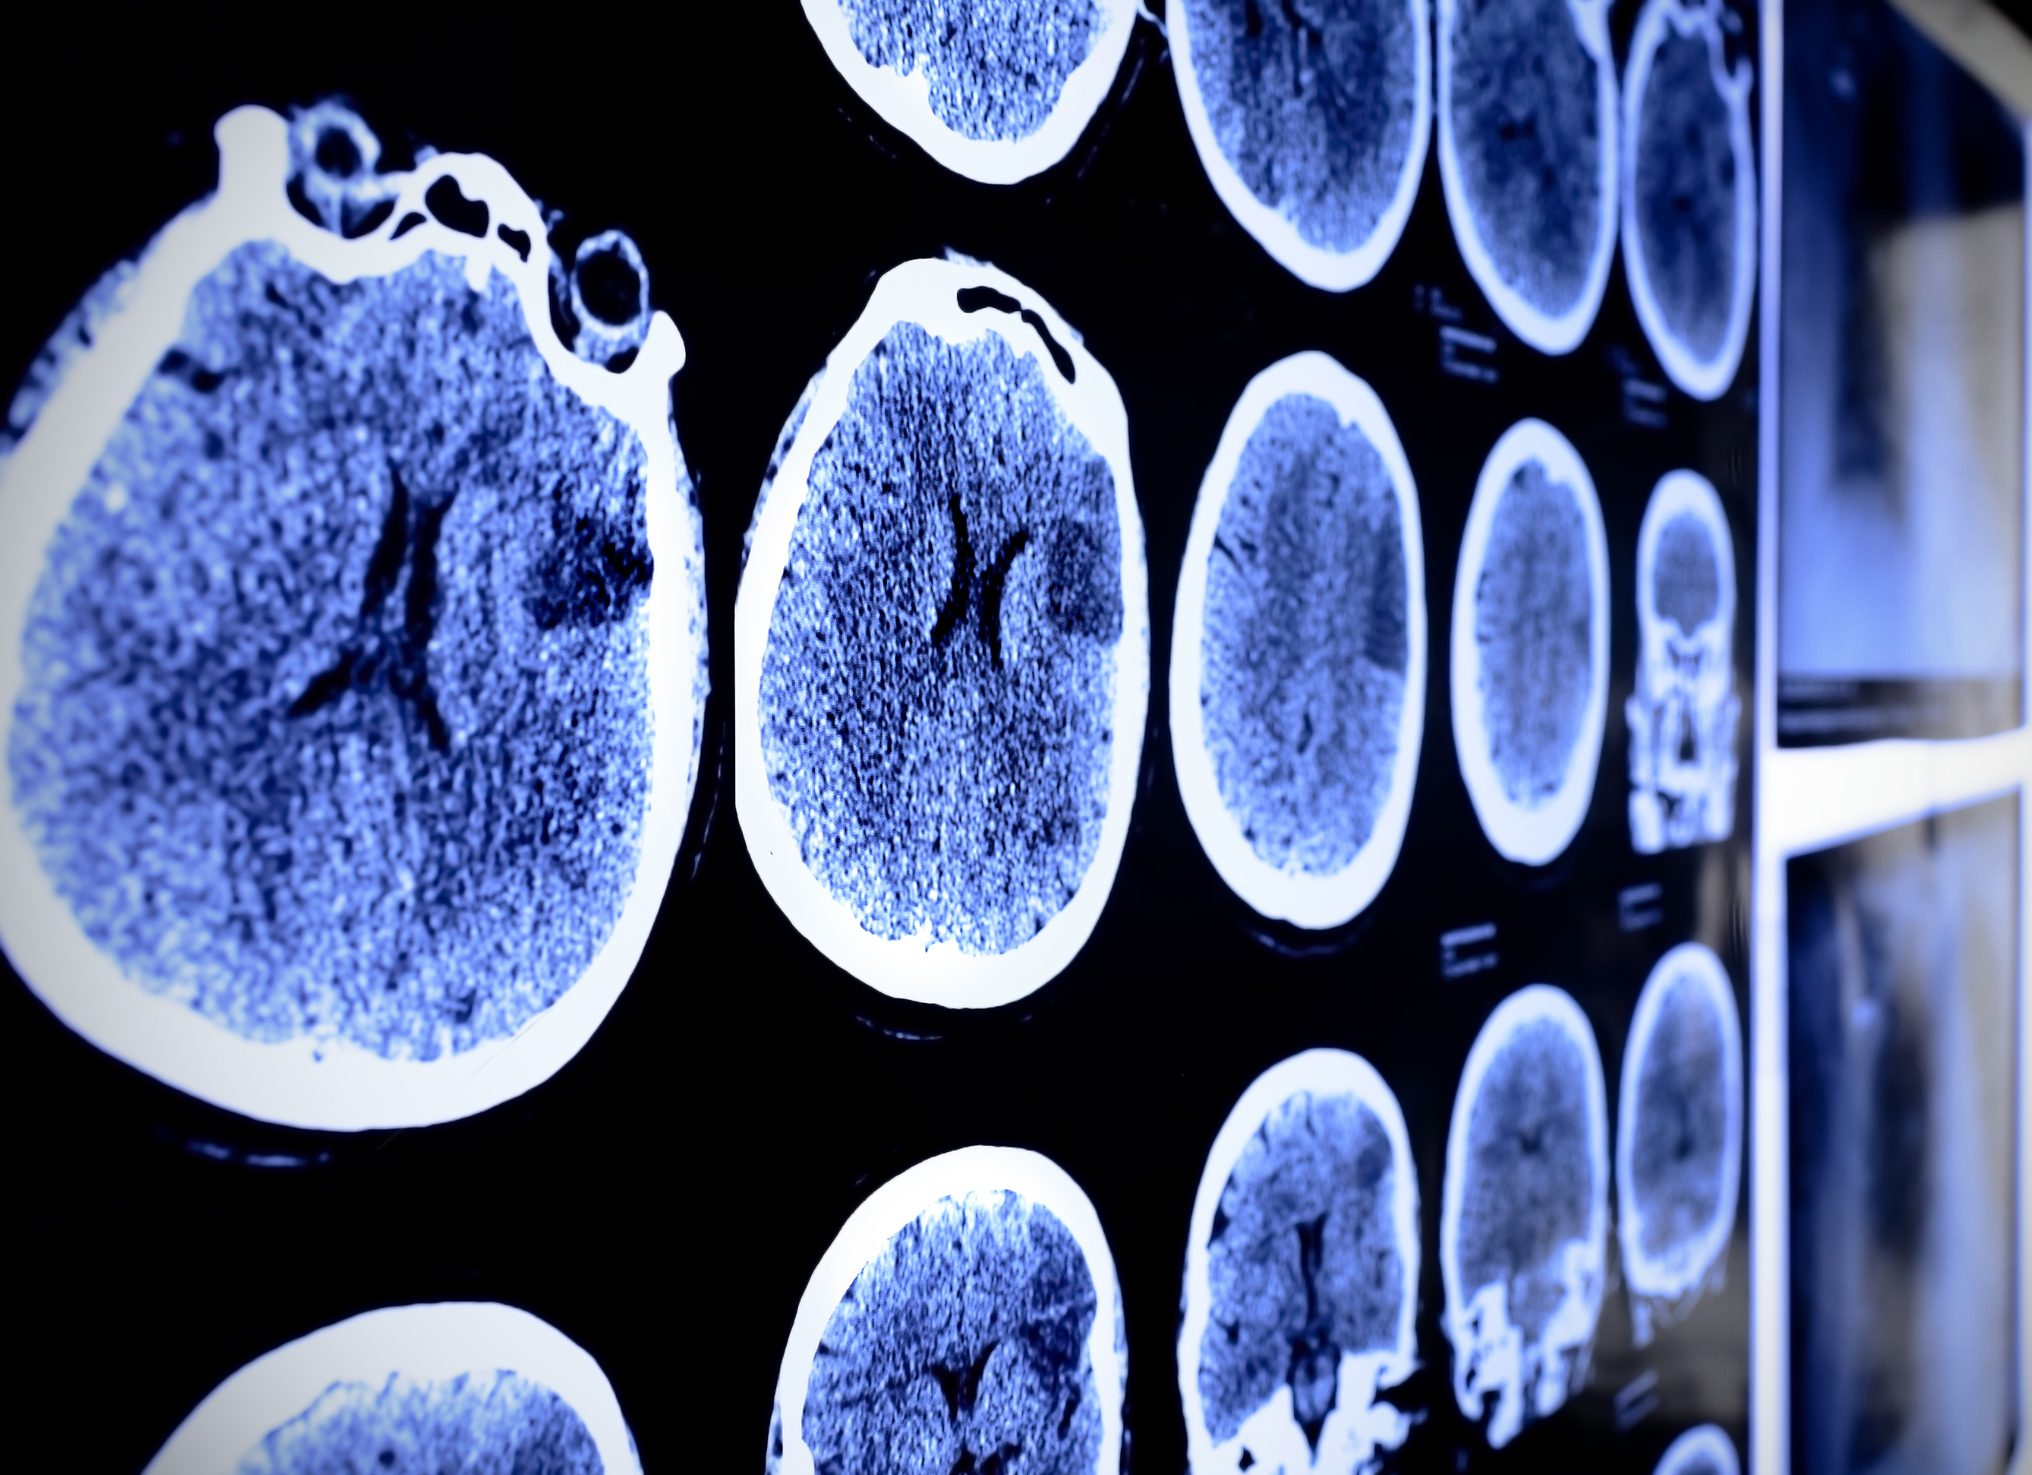 Cancerwise blog post: What to know about brain tumors, brain tumor treatment and clinical trials for brain tumors